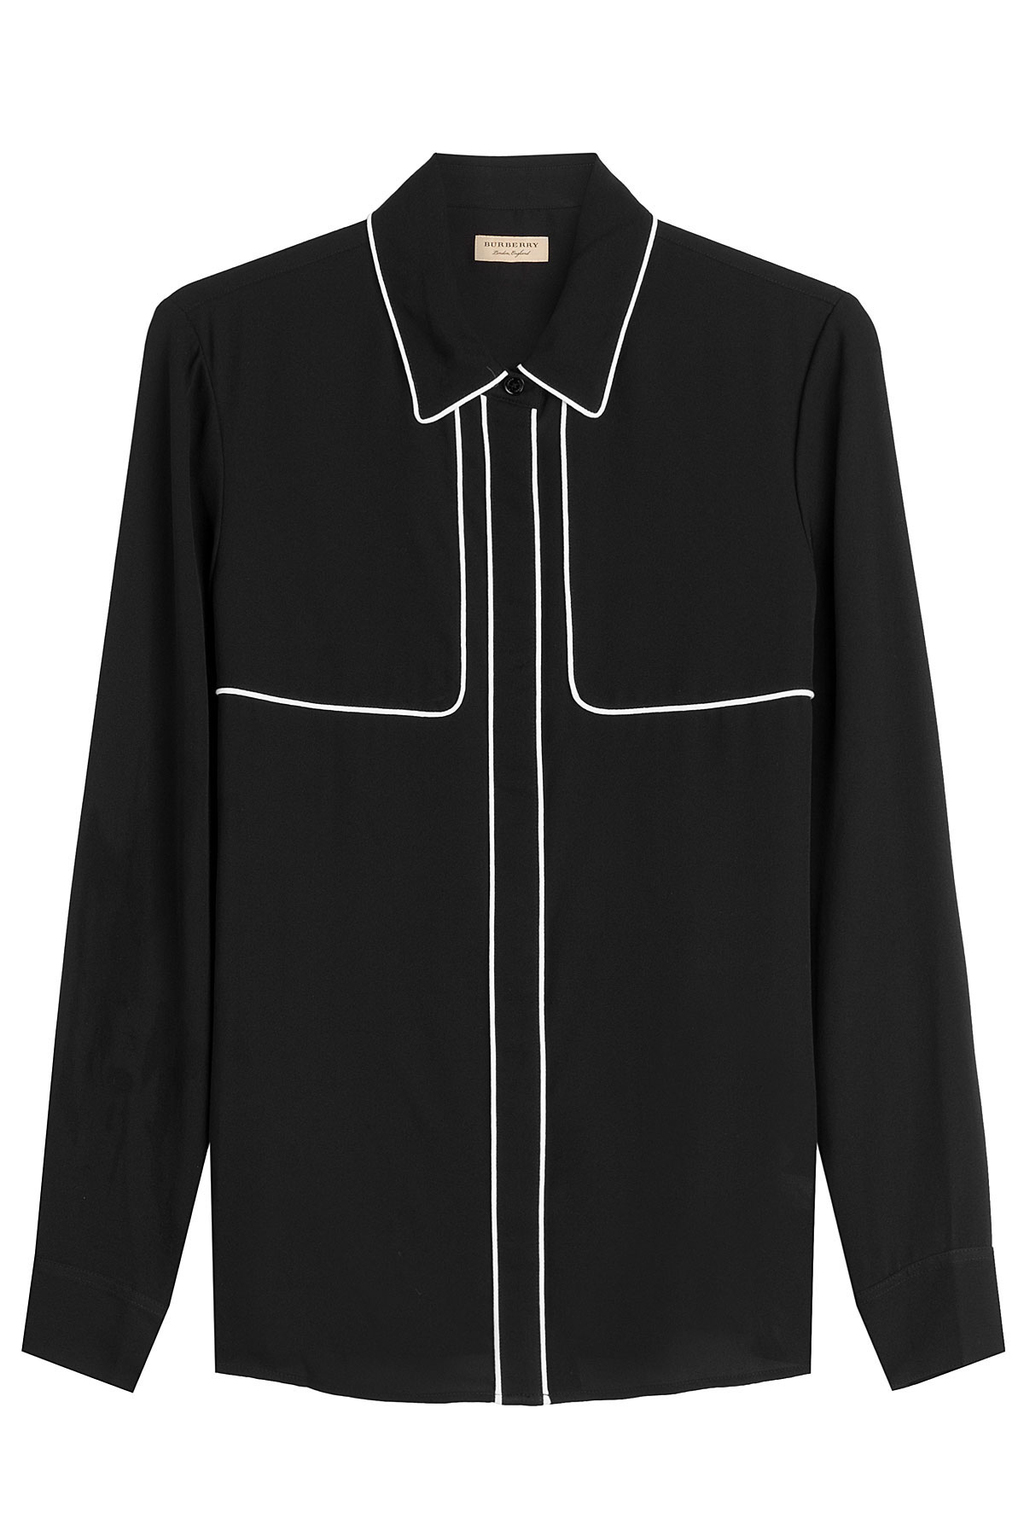 Mulberry Silk Blouse With Contrast Piping - neckline: shirt collar/peter pan/zip with opening; pattern: plain; style: blouse; secondary colour: white; predominant colour: black; occasions: evening; length: standard; fibres: silk - 100%; fit: body skimming; sleeve length: long sleeve; sleeve style: standard; texture group: silky - light; pattern type: fabric; multicoloured: multicoloured; season: a/w 2016; wardrobe: event